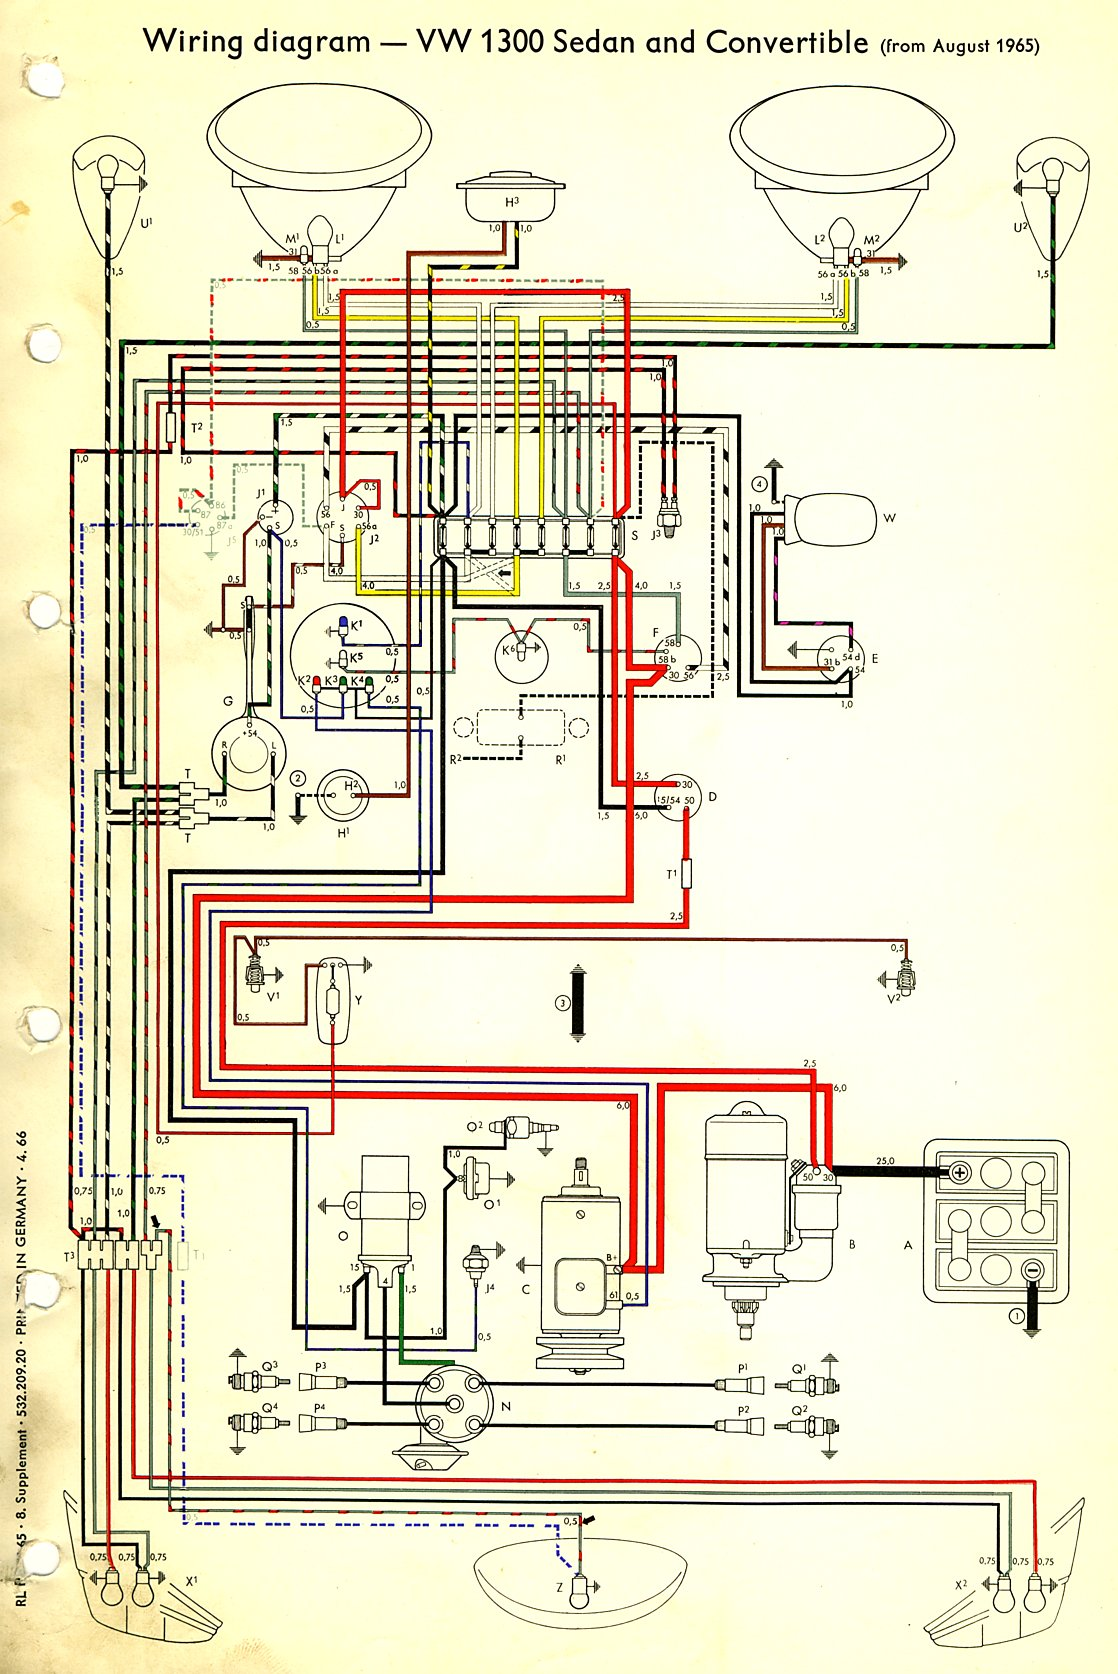 bug_66 1966 beetle wiring diagram thegoldenbug com vw wiring diagrams at gsmportal.co